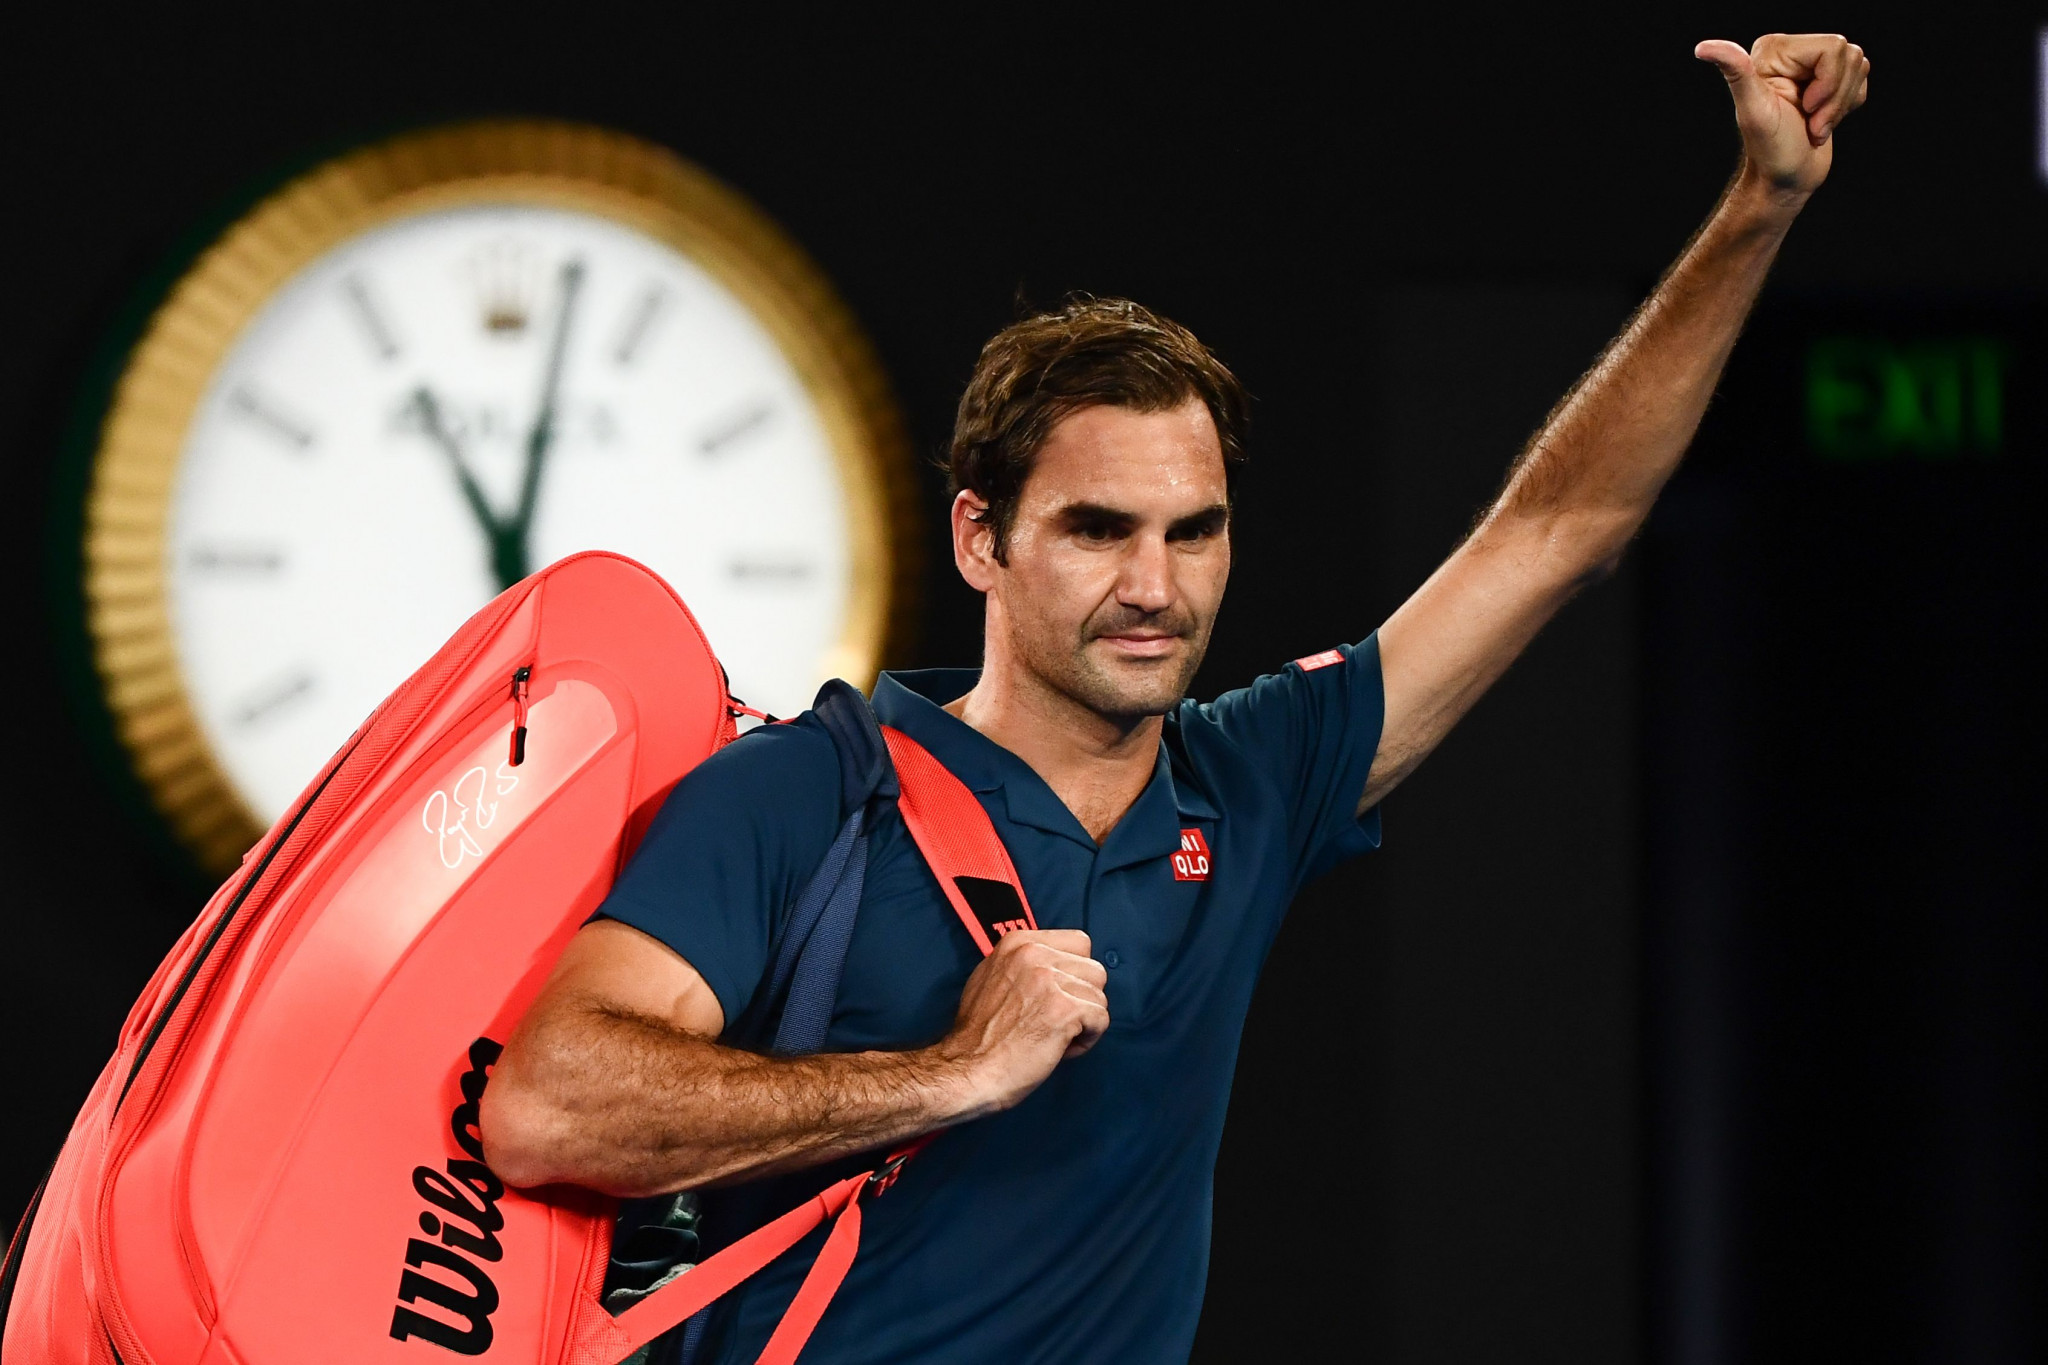 The result ended Roger Federer's hopes of a third consecutive Australian Open title ©Getty Images